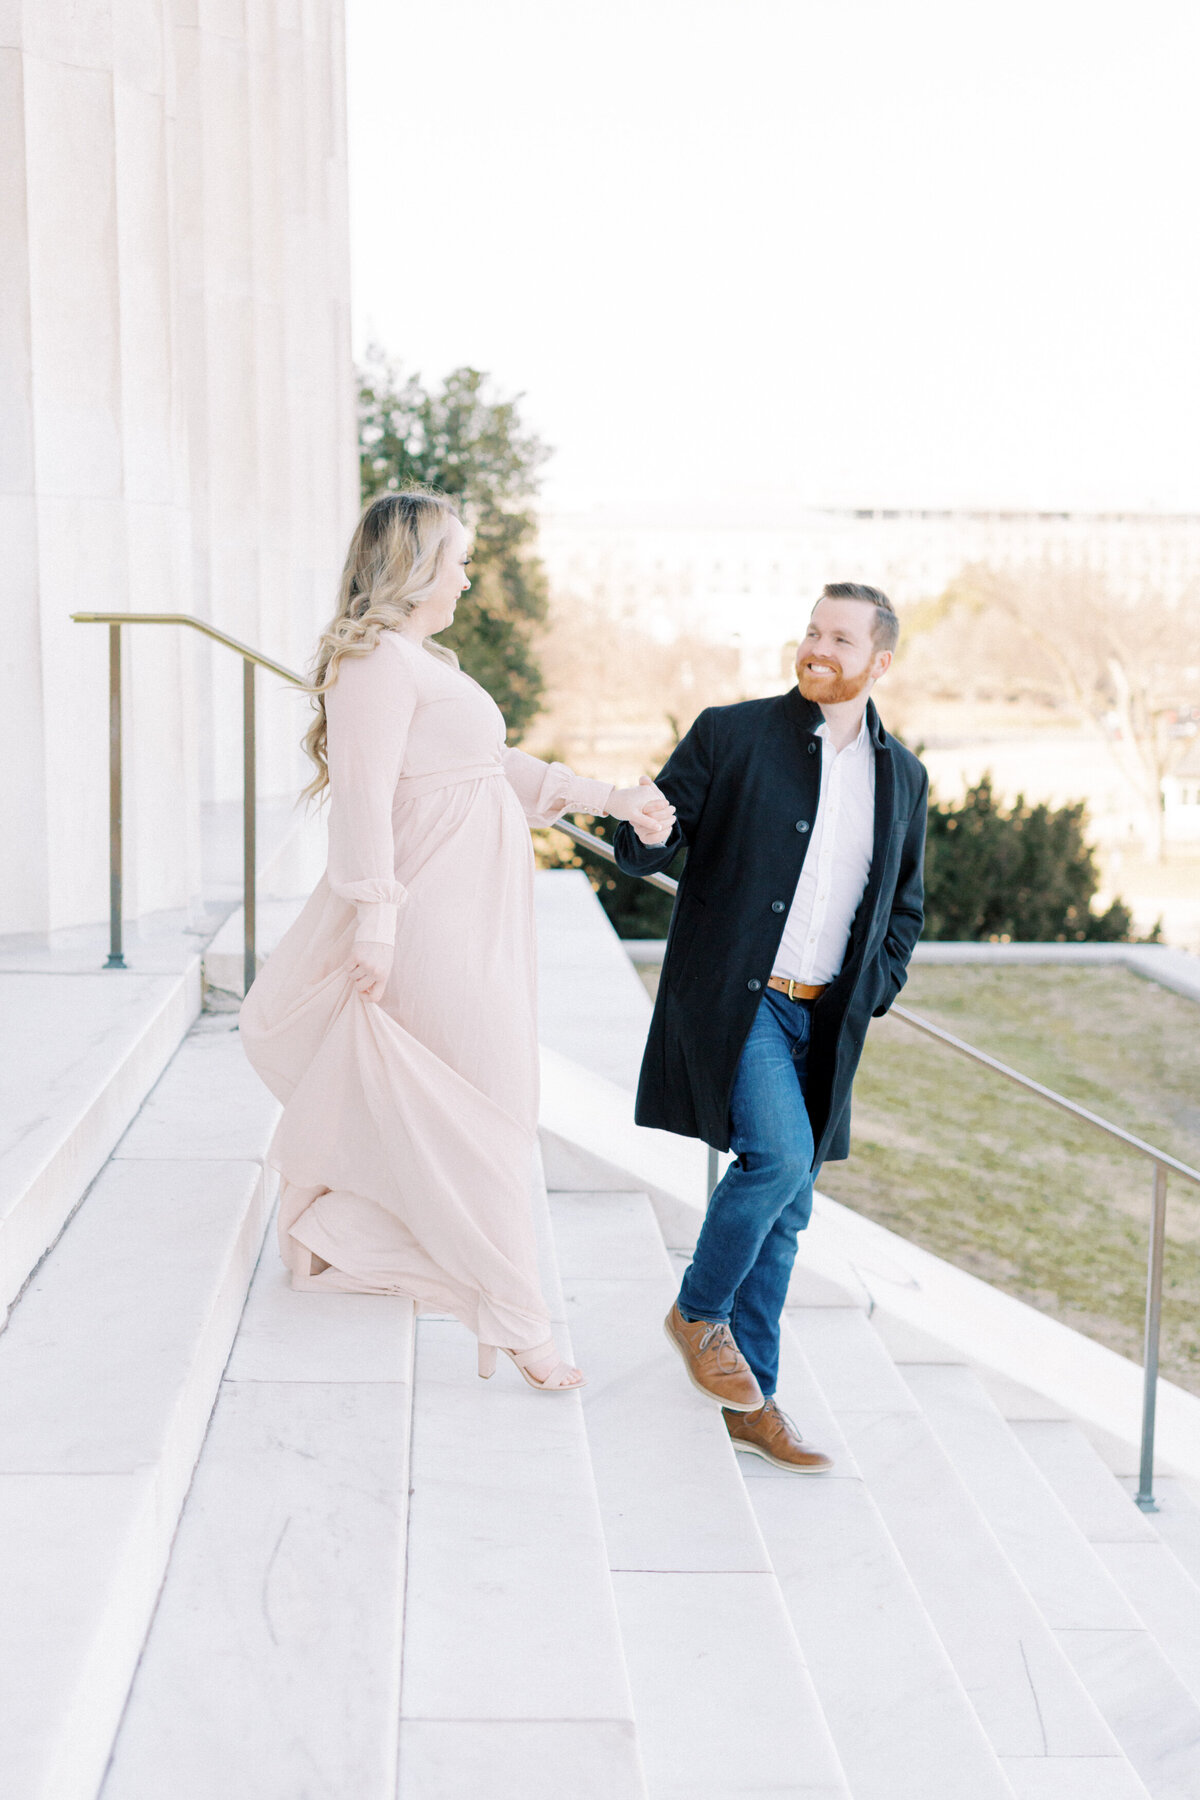 Lauren + Marshall _ Maternity _ Washington, DC Session _ LB Photography-30